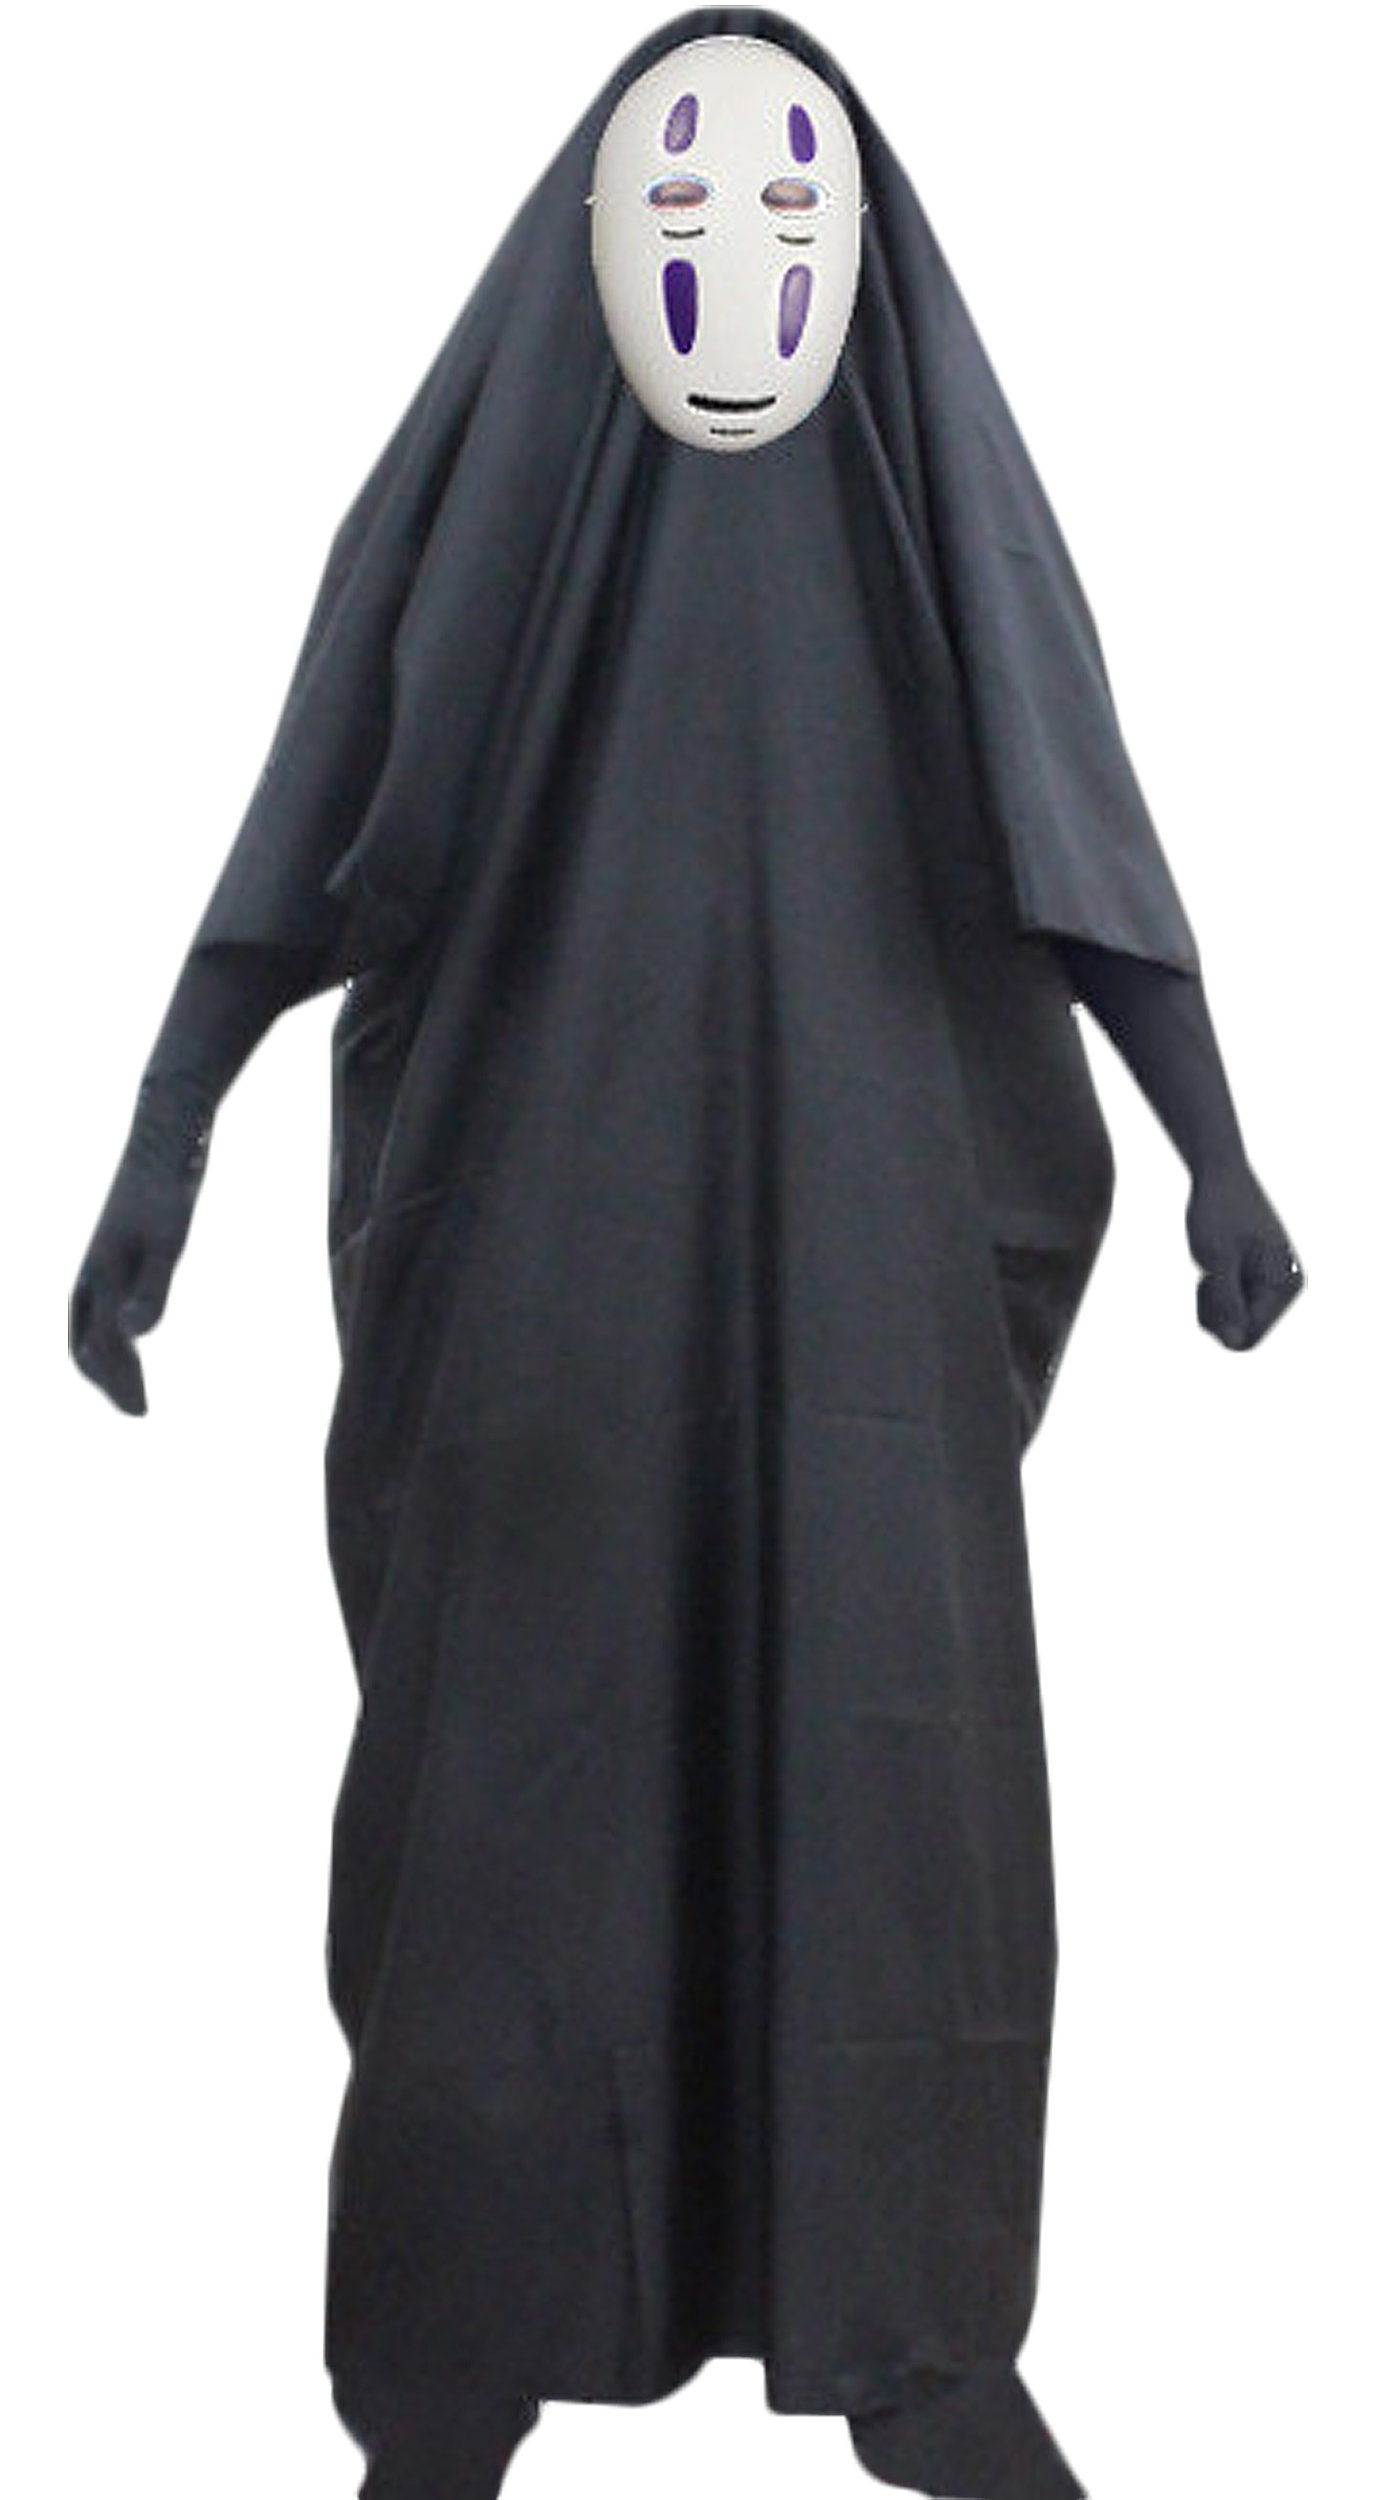 Pulle-A Anime Fancy No-Face Spirited Away Halloween Cosplay Costume with Mask gloves for Halloween STYLE 2 S